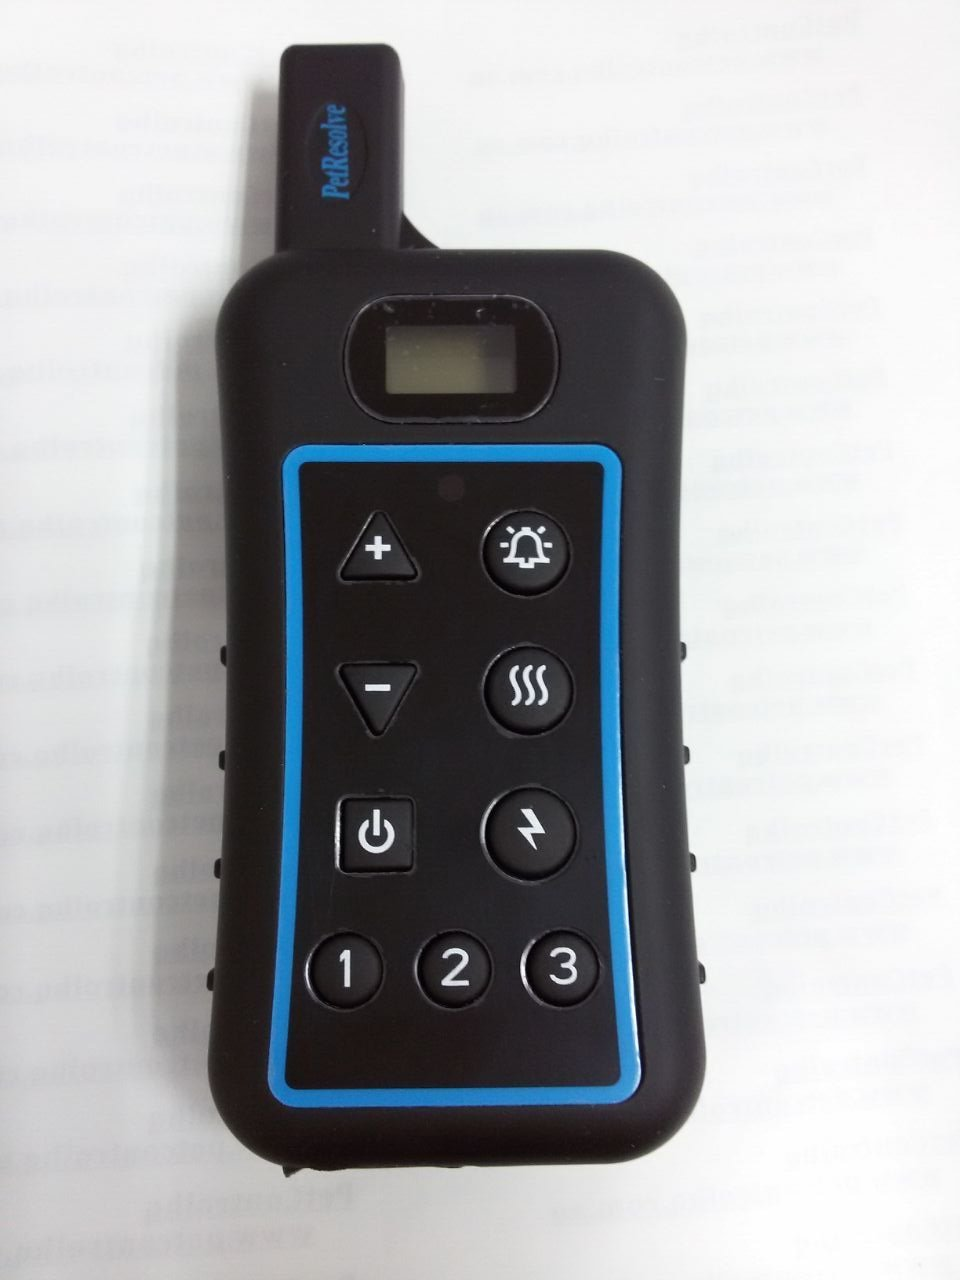 Pet Resolve Spare Remote/Transmitter for The DT-V System by Pet Resolve